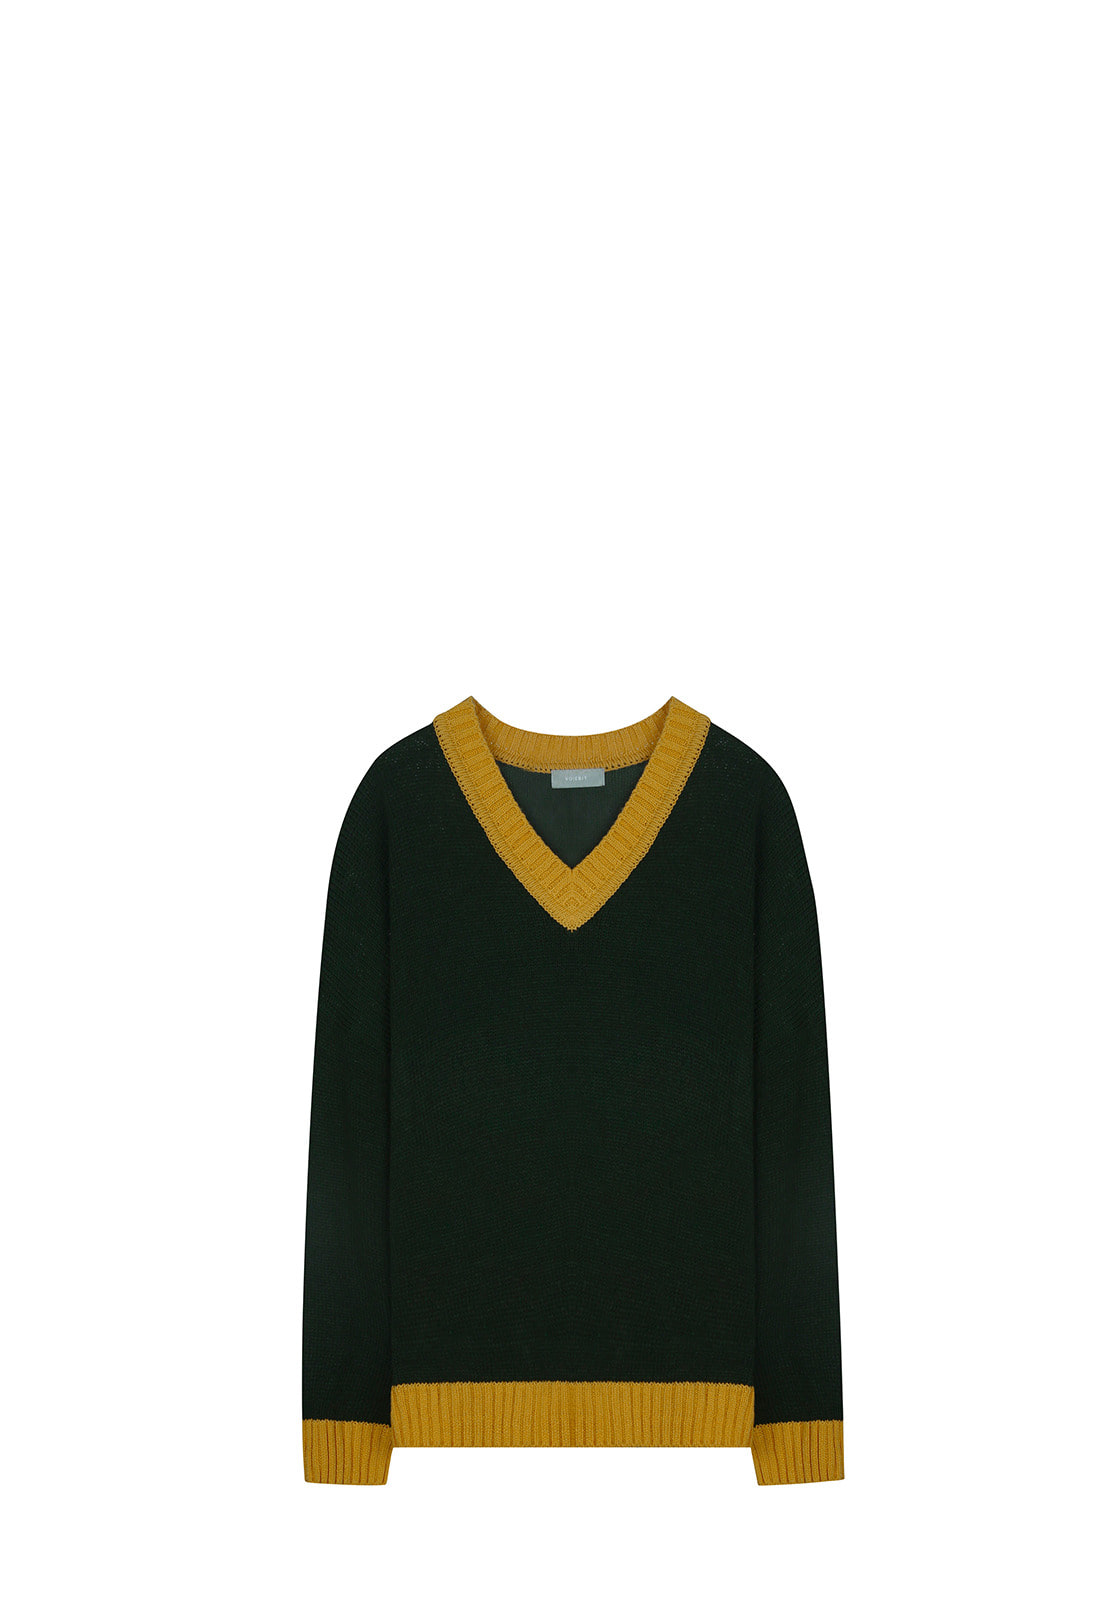 V513 COLORATION V-NECK KNITGREEN